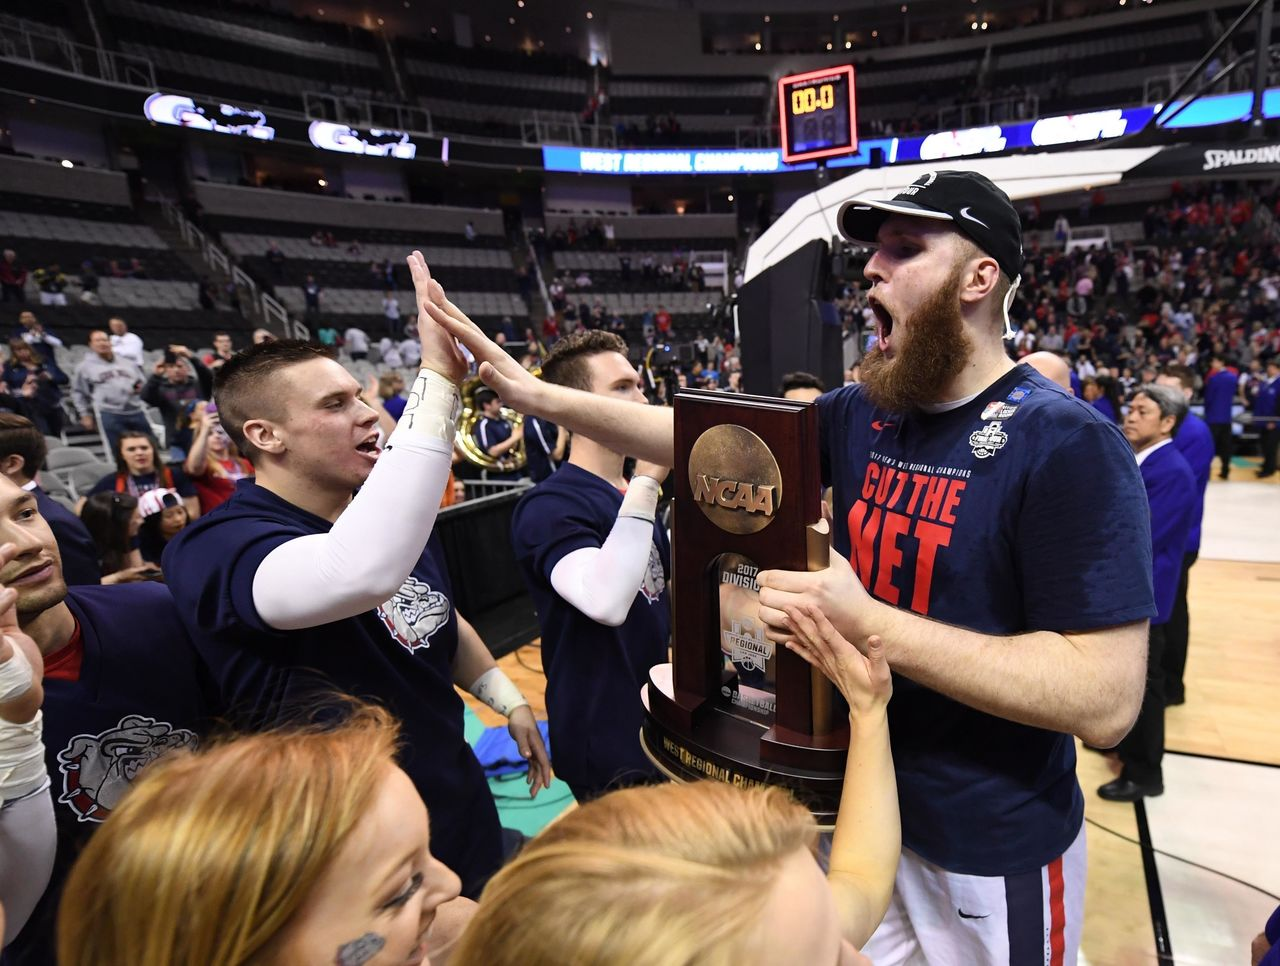 Cropped 2017 03 26t004904z 1098427401 nocid rtrmadp 3 ncaa basketball ncaa tournament west regional gonzaga vs xavier